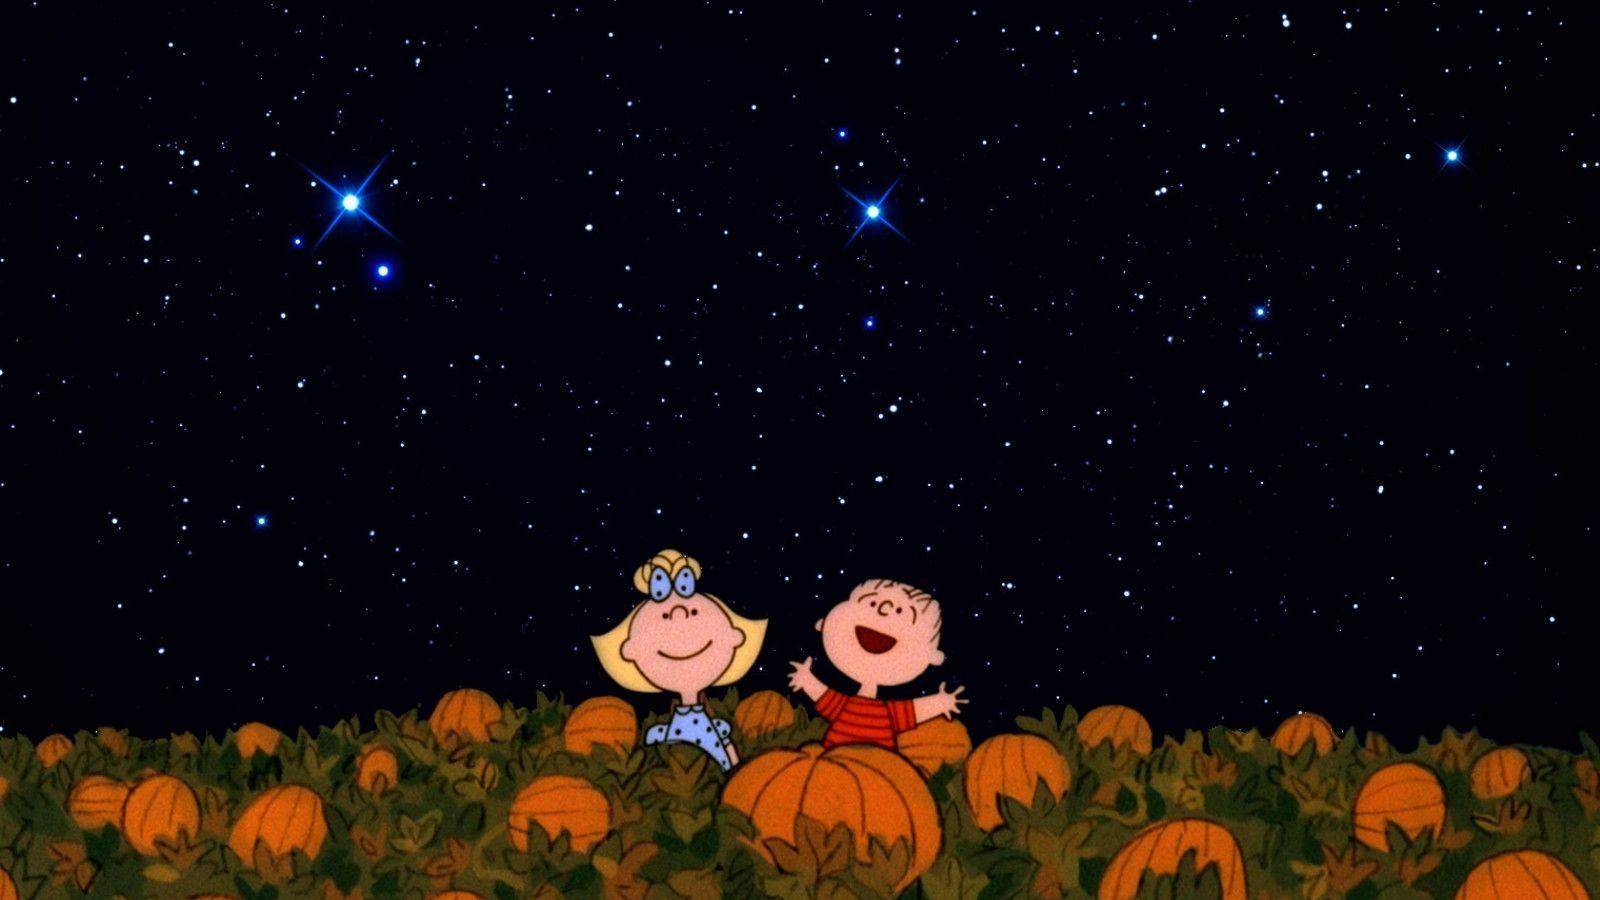 77+] Snoopy Halloween Wallpaper on WallpaperSafari